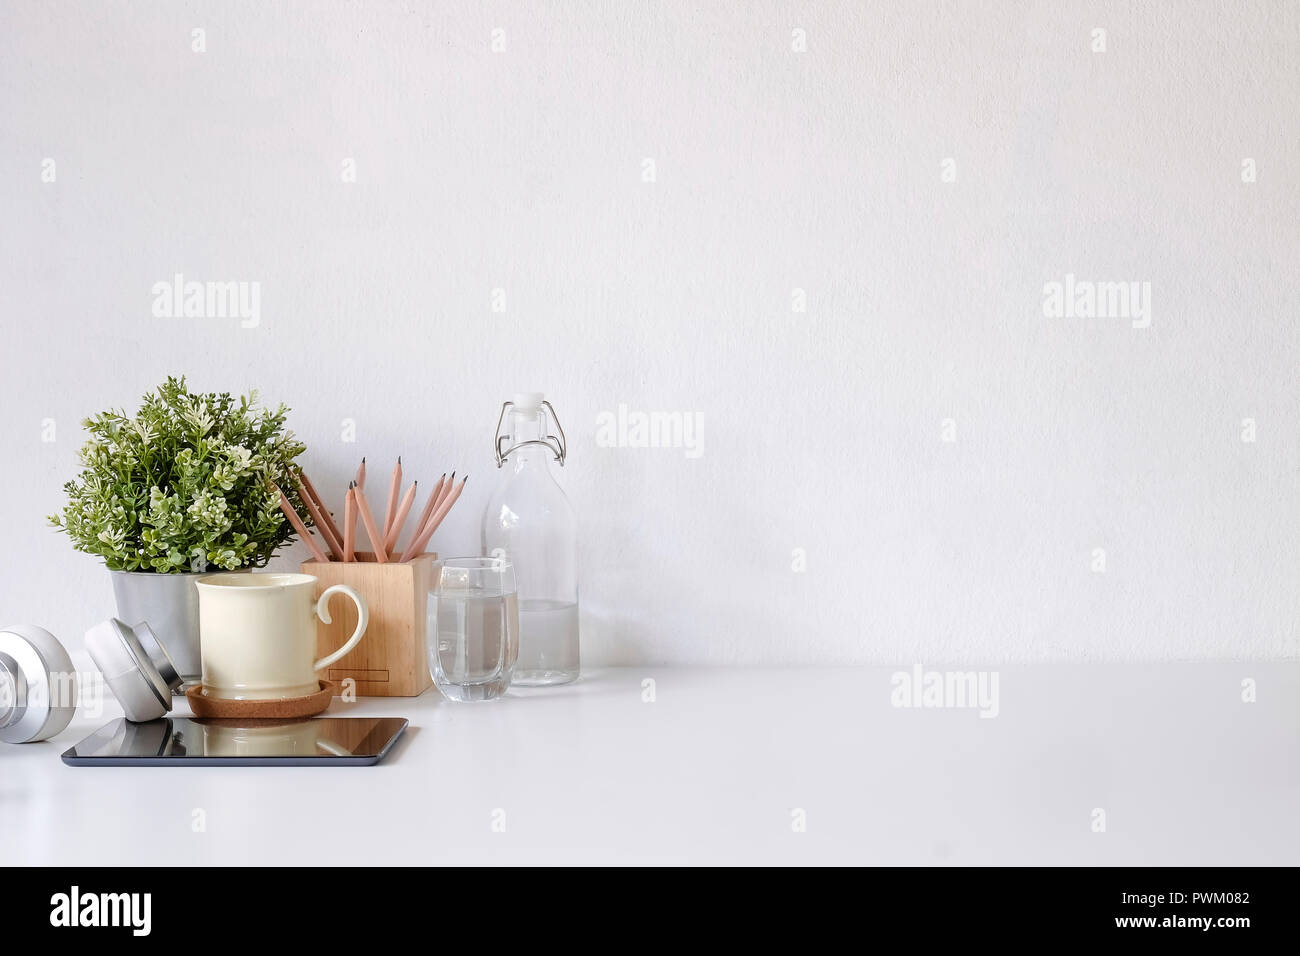 Workspace Empty Space And Coffee Mug Pencil Plant Tablet